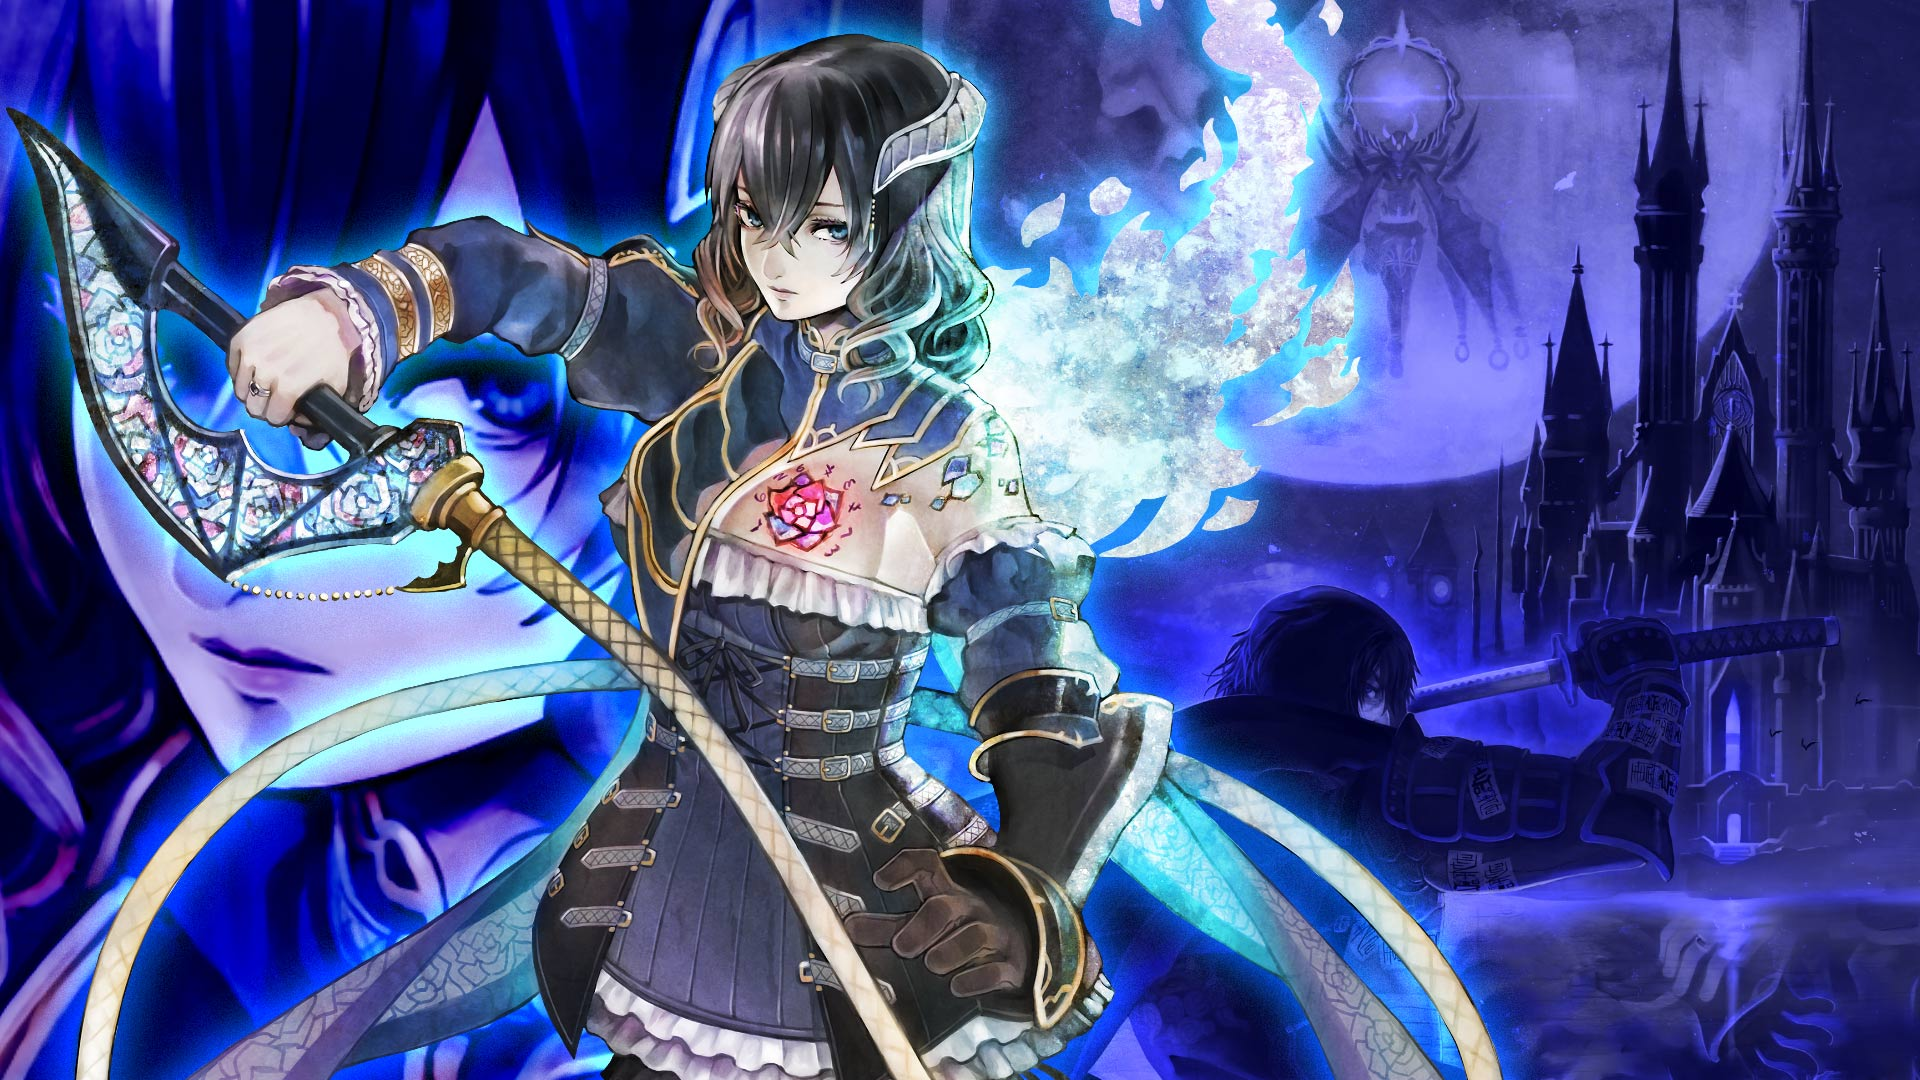 Steam card exchange showcase bloodstained curse of the moon malvernweather Choice Image